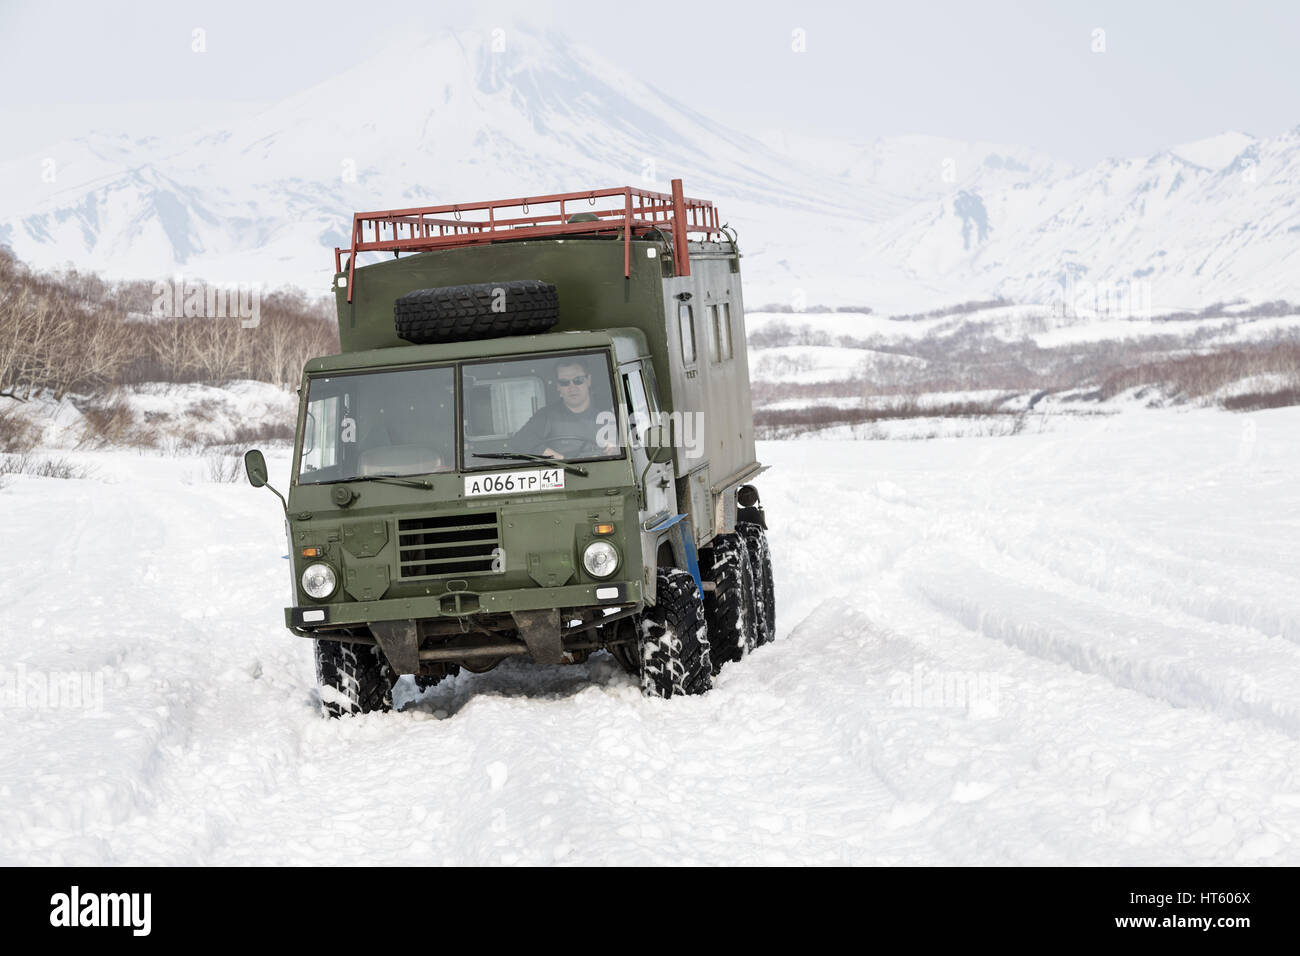 Old Swedish military off-road vehicle Volvo Laplander C304 (six-wheel drive) khaki color, driving in snow along - Stock Image